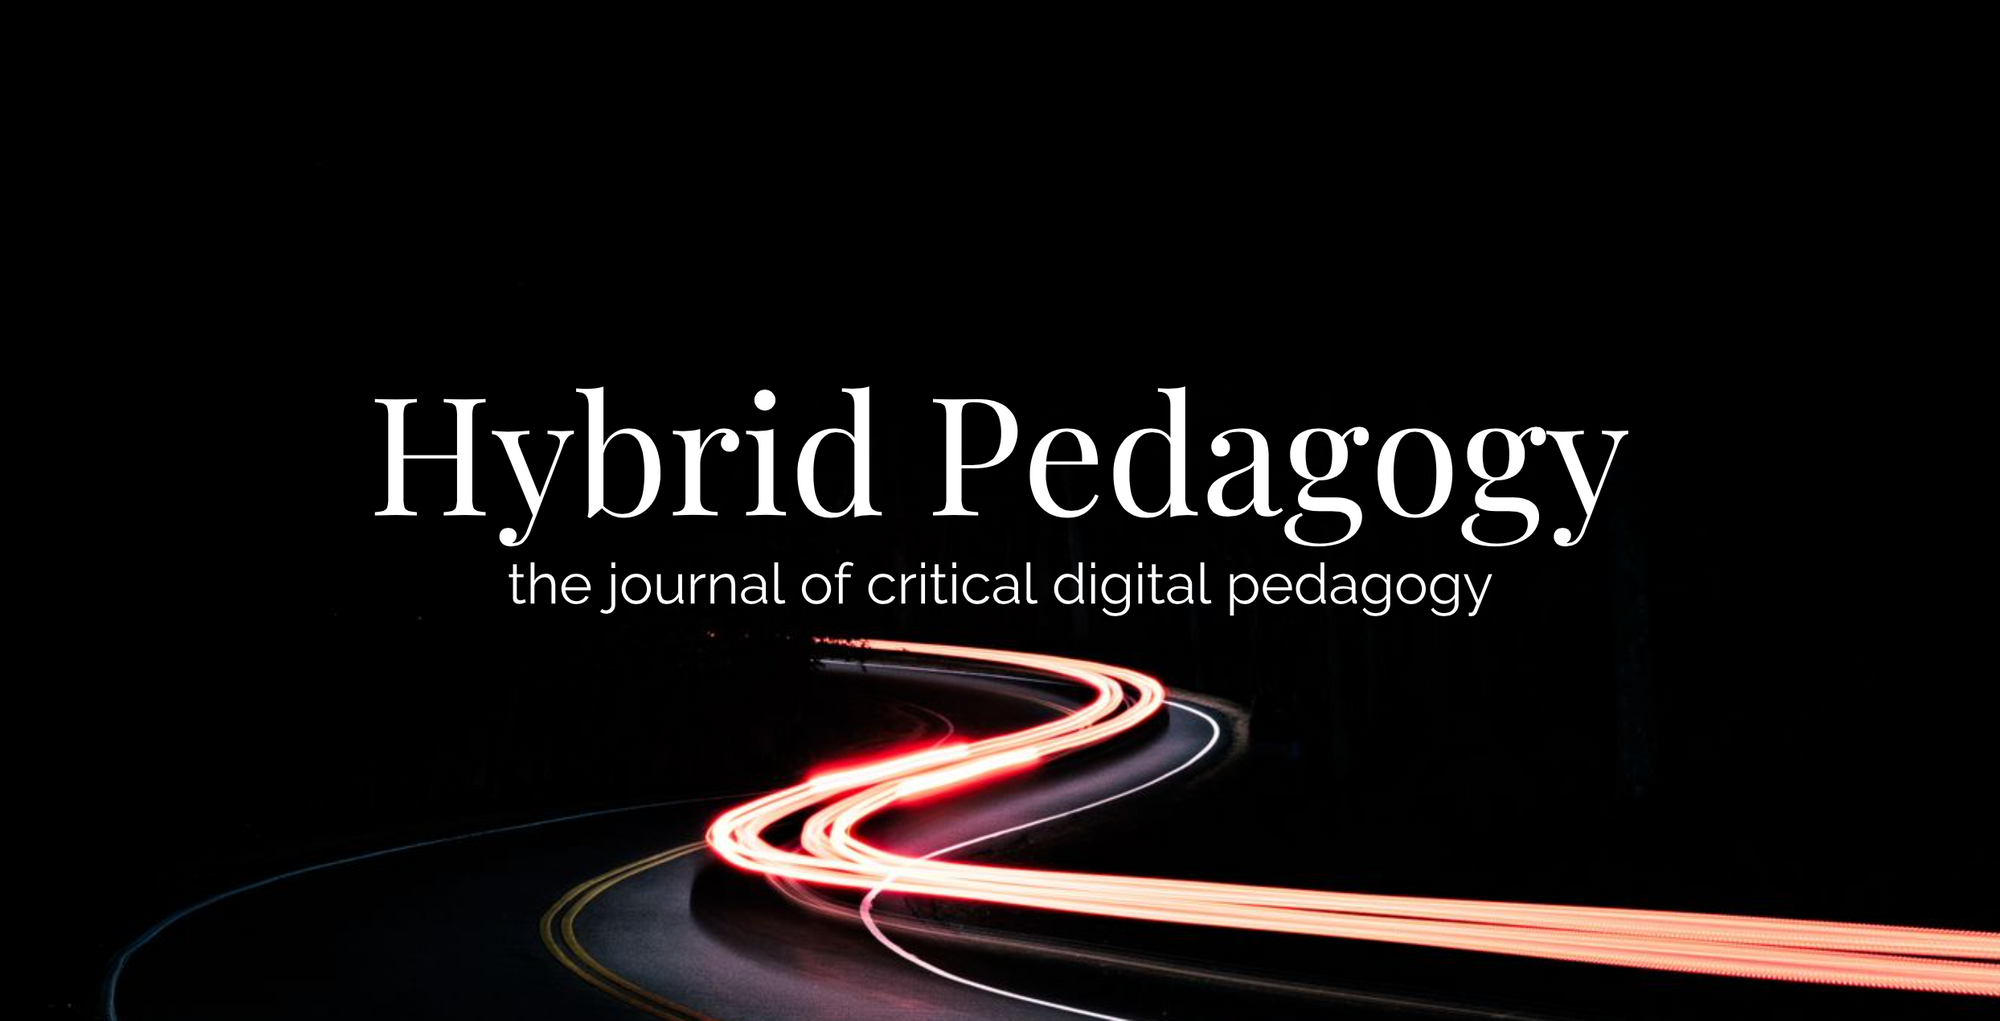 Hybrid Pedagogy: the journal of critical digital pedagogy